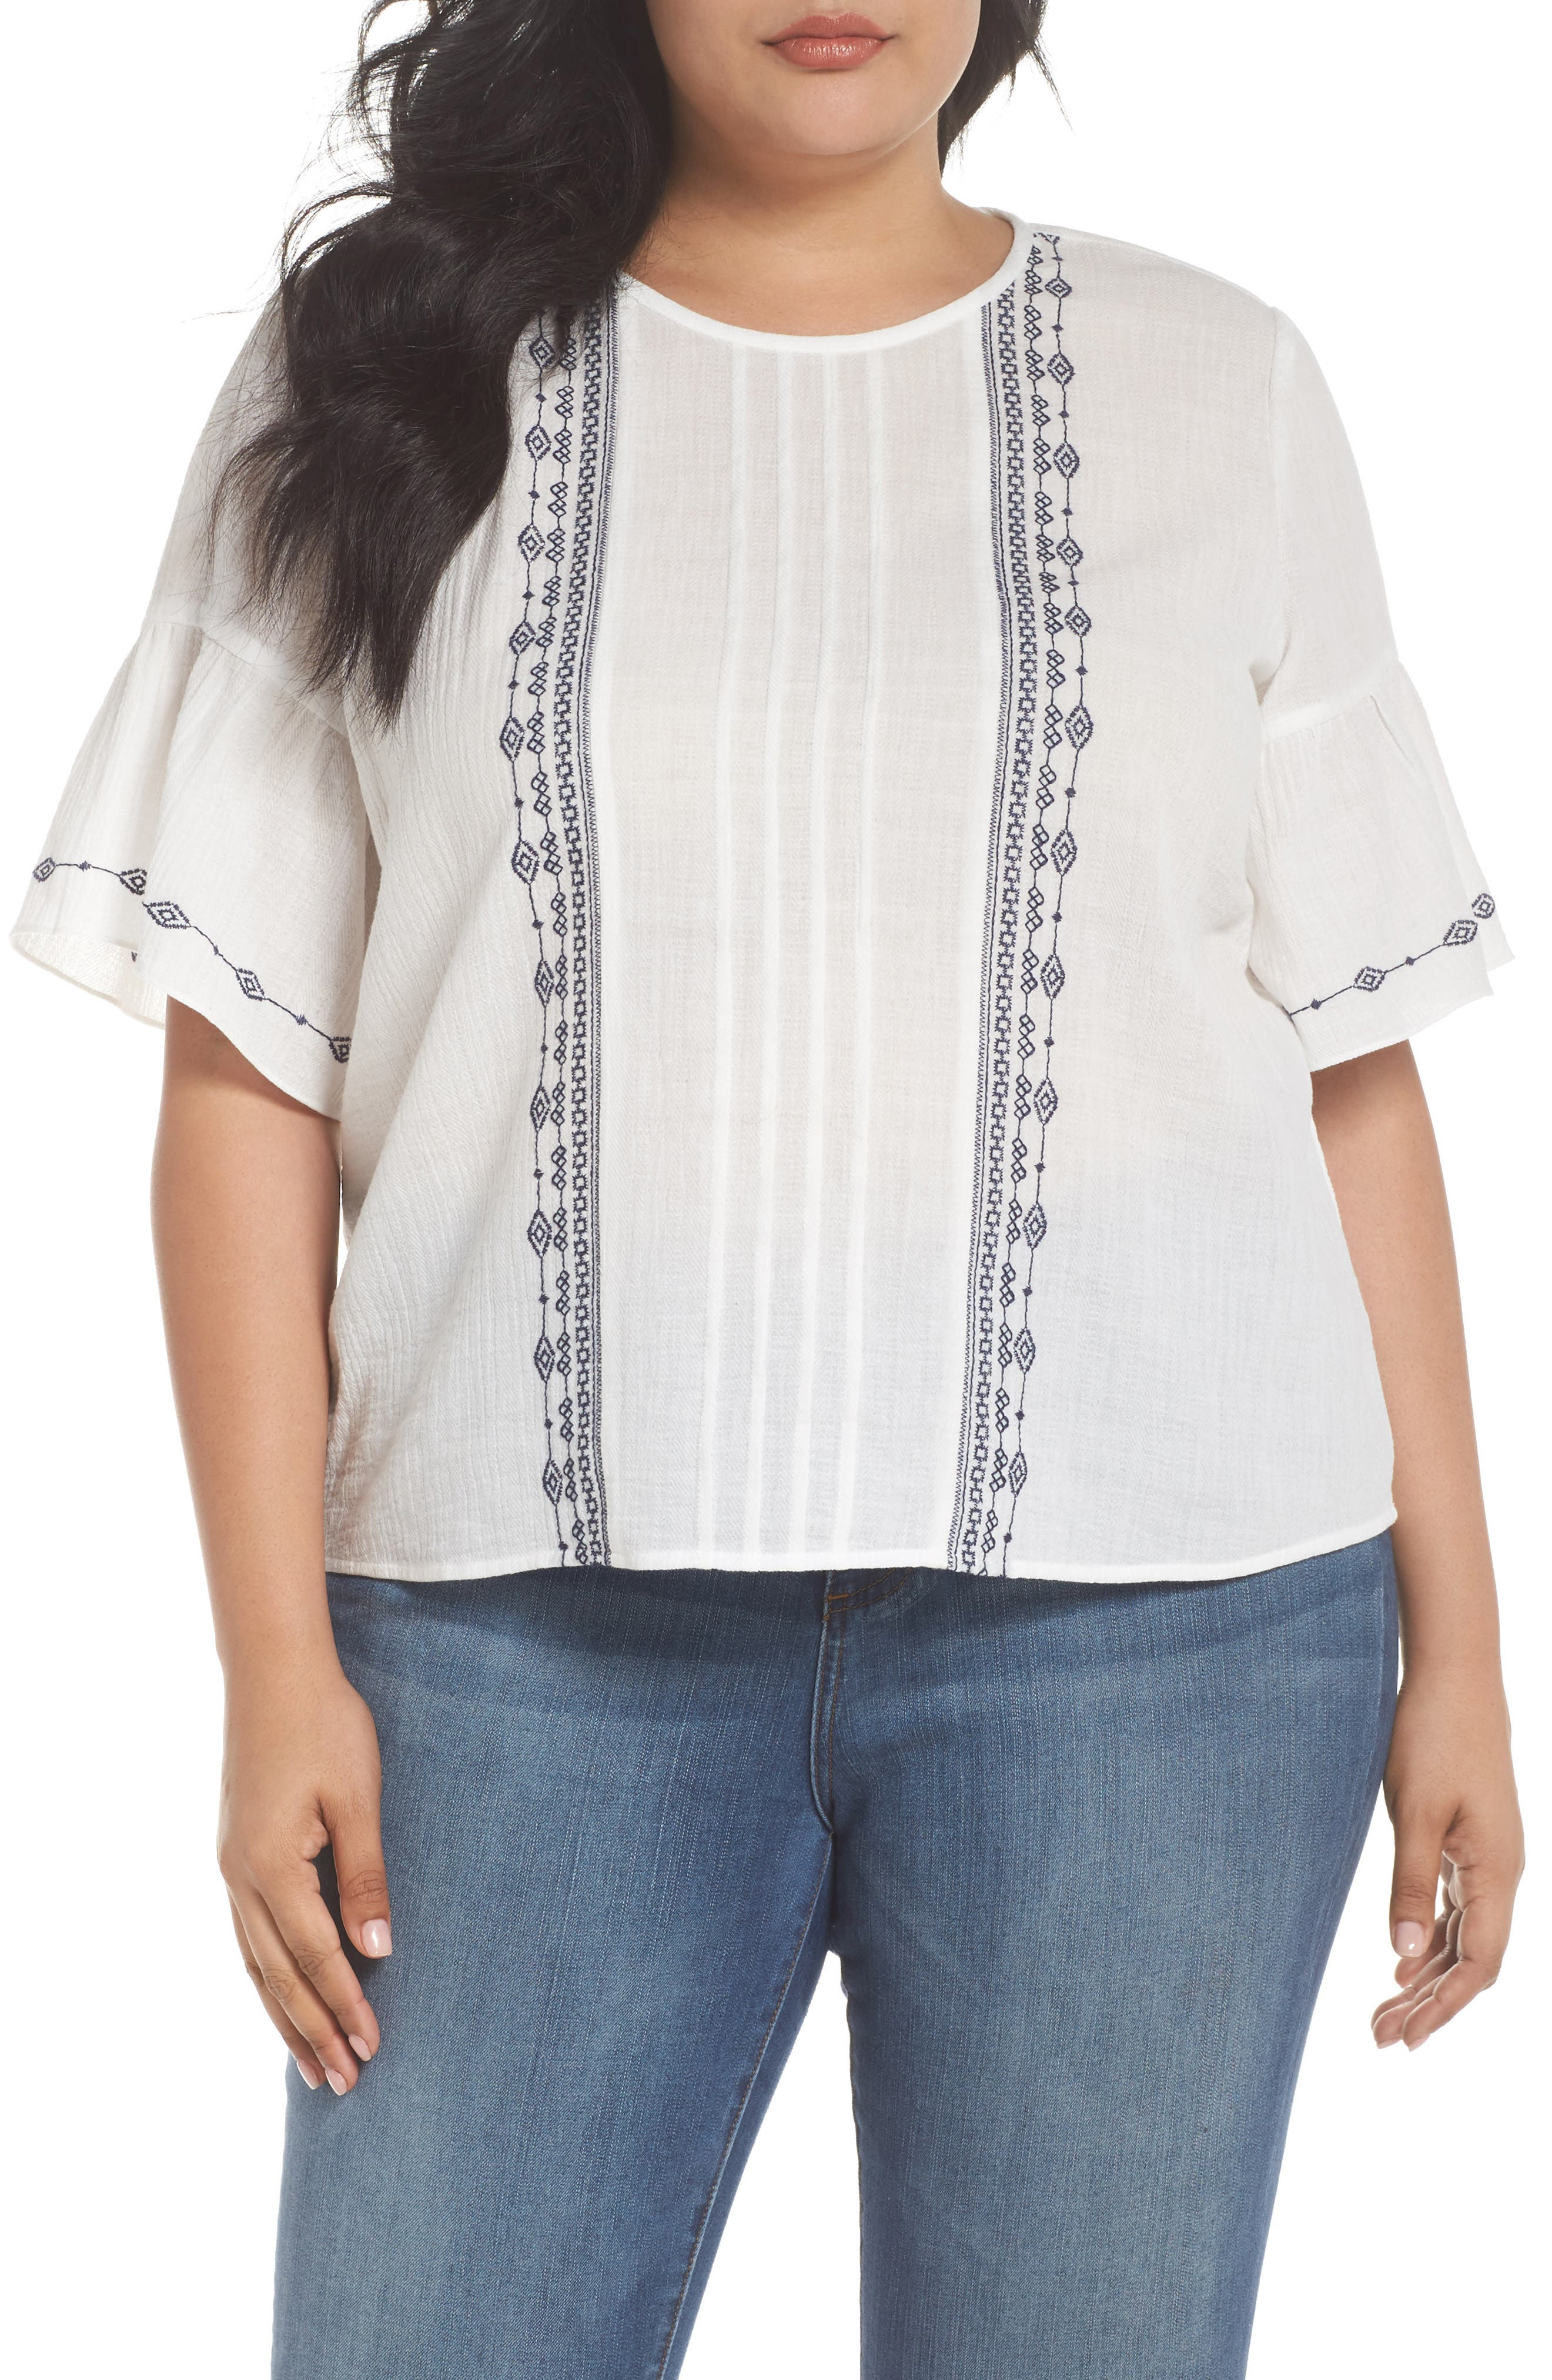 Ruffle Sleeve Embroidered Crinkle Cotton Top,                             Main thumbnail 1, color,                             ULTRA WHIT